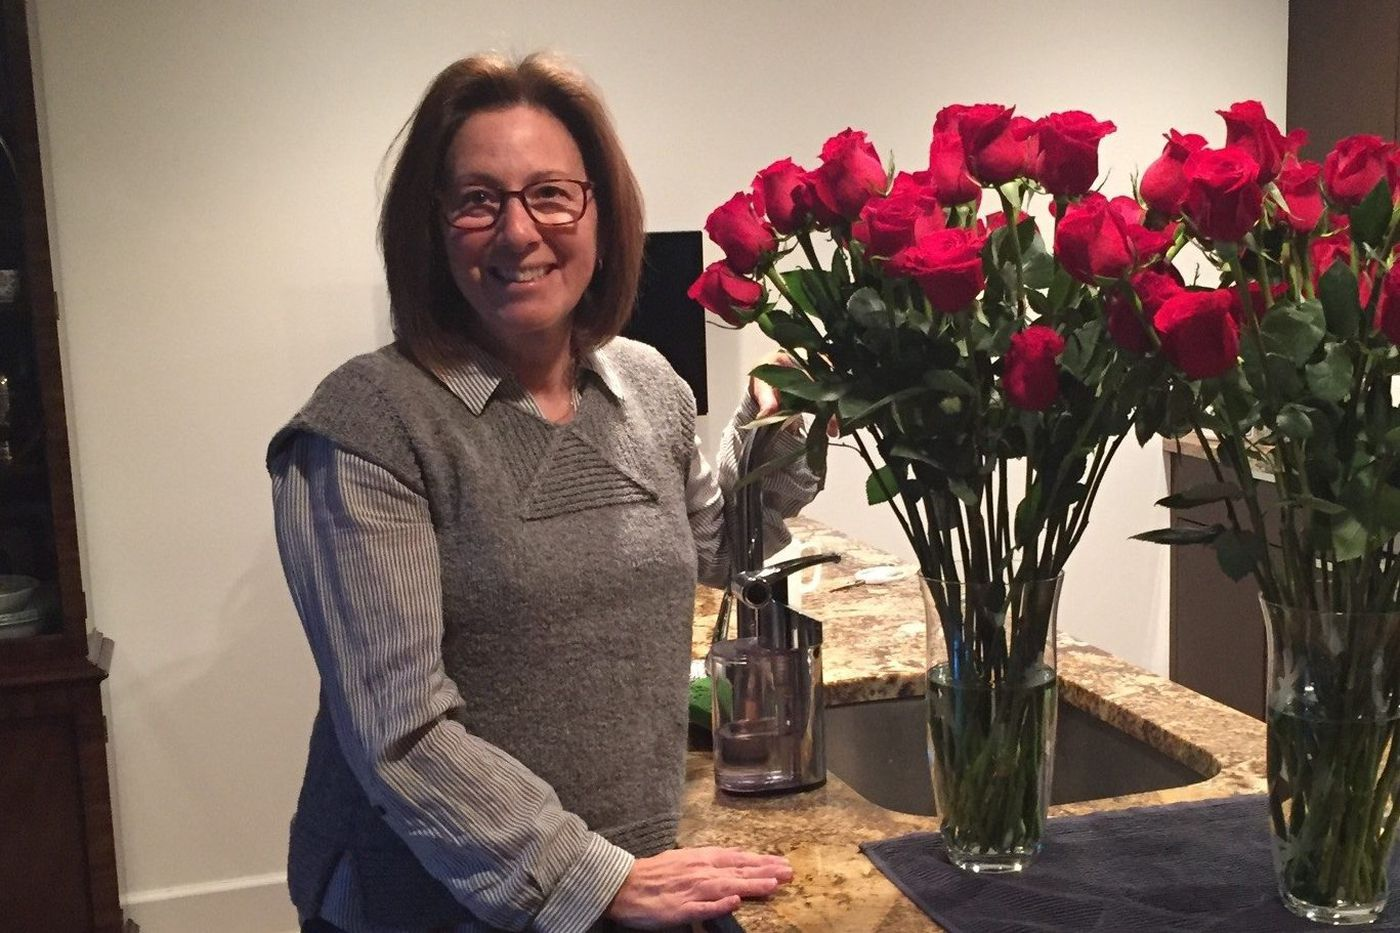 Dr. Sheila Ronkin, 61, maternal fetal specialist who became clinical research leader